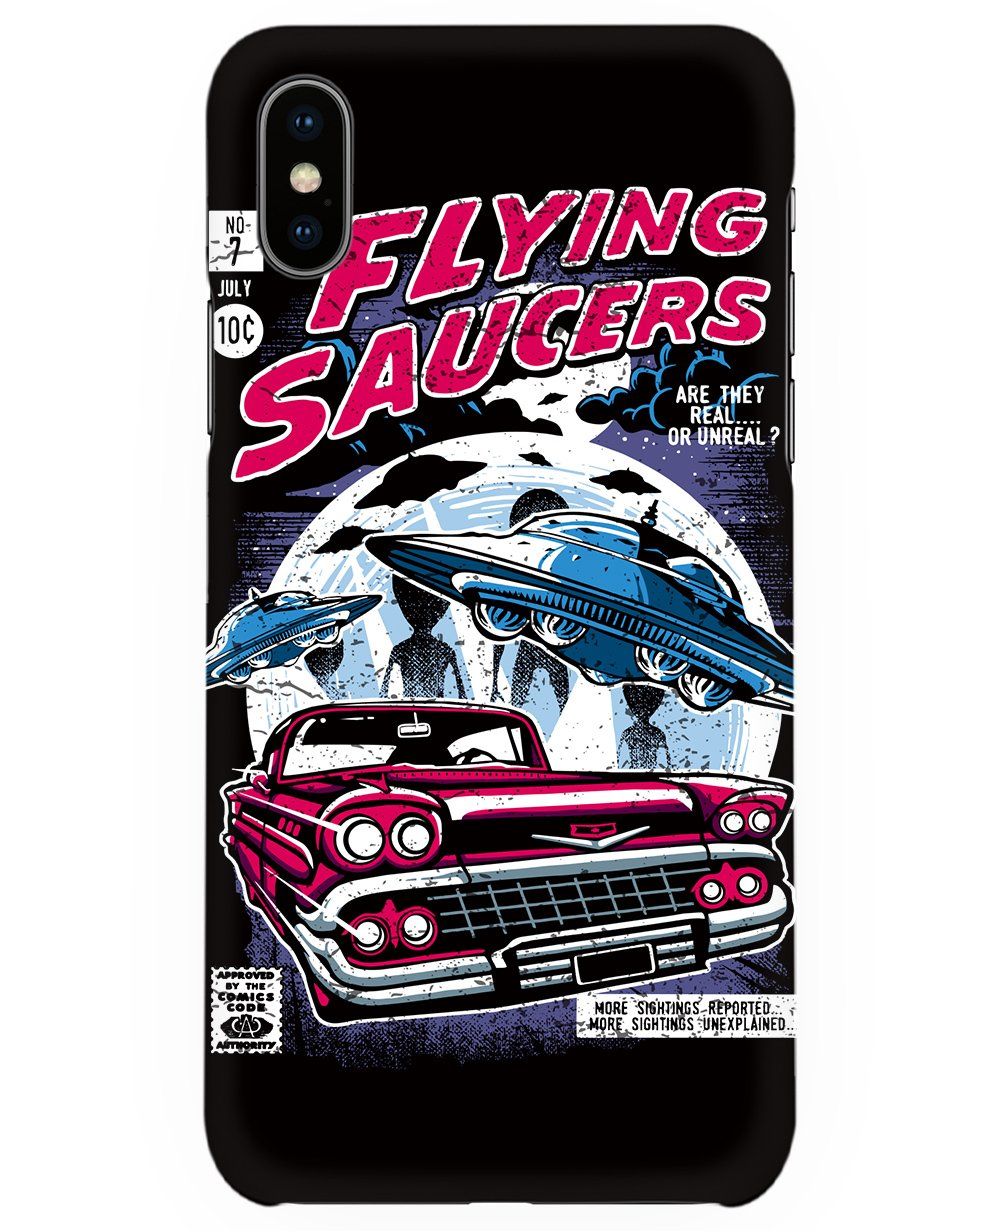 Flying Saucers Print Iphone Case - Phone cases - THEYLIVE - BRANMA